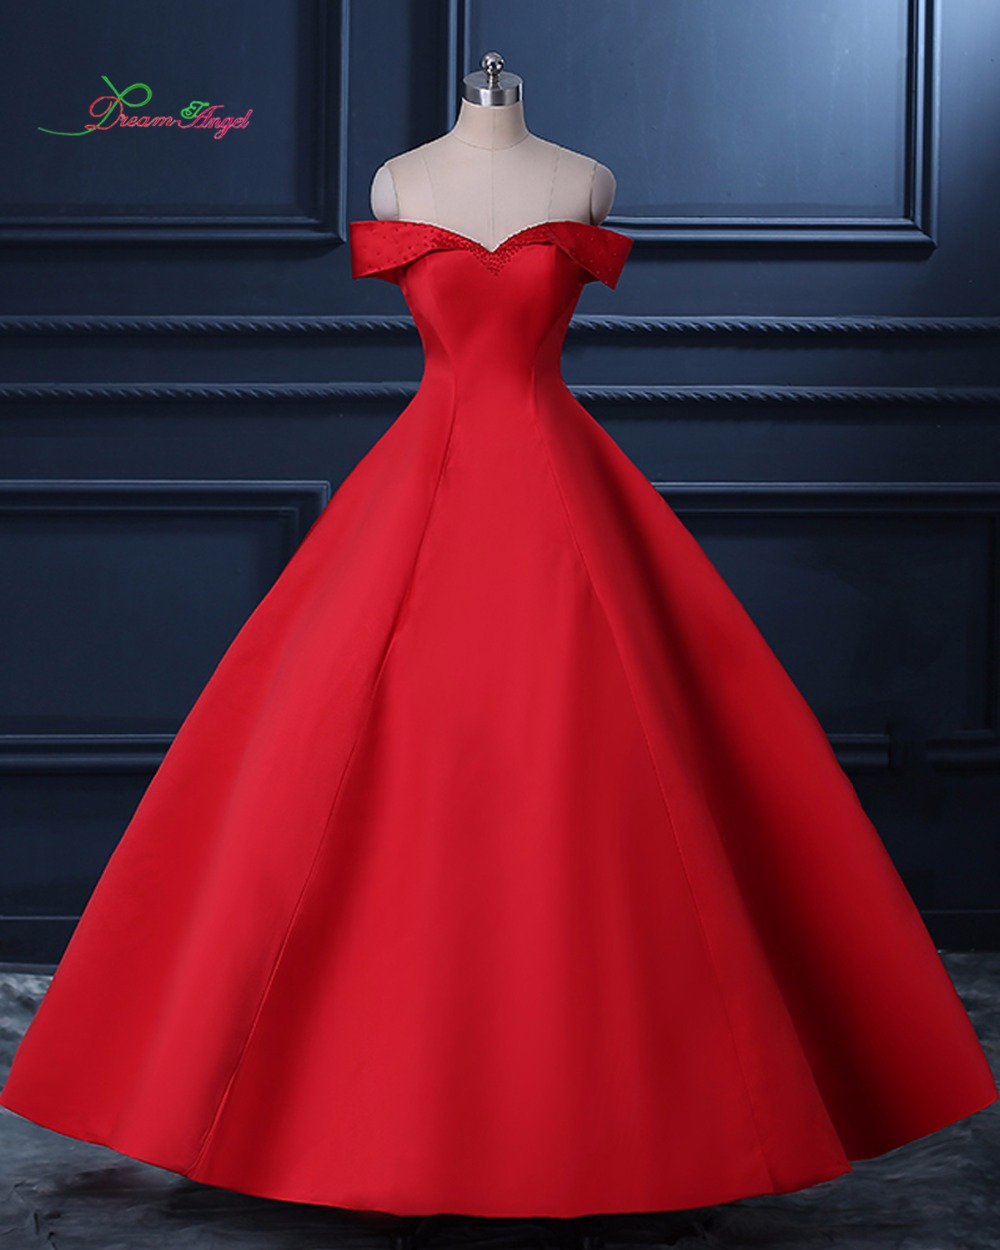 Fmogl Simple Boat Neck Taffeta Ball Gown   Prom     Dresses   2019 Sleeveless Floor Length Pearls Vestido De Festa Plus Size